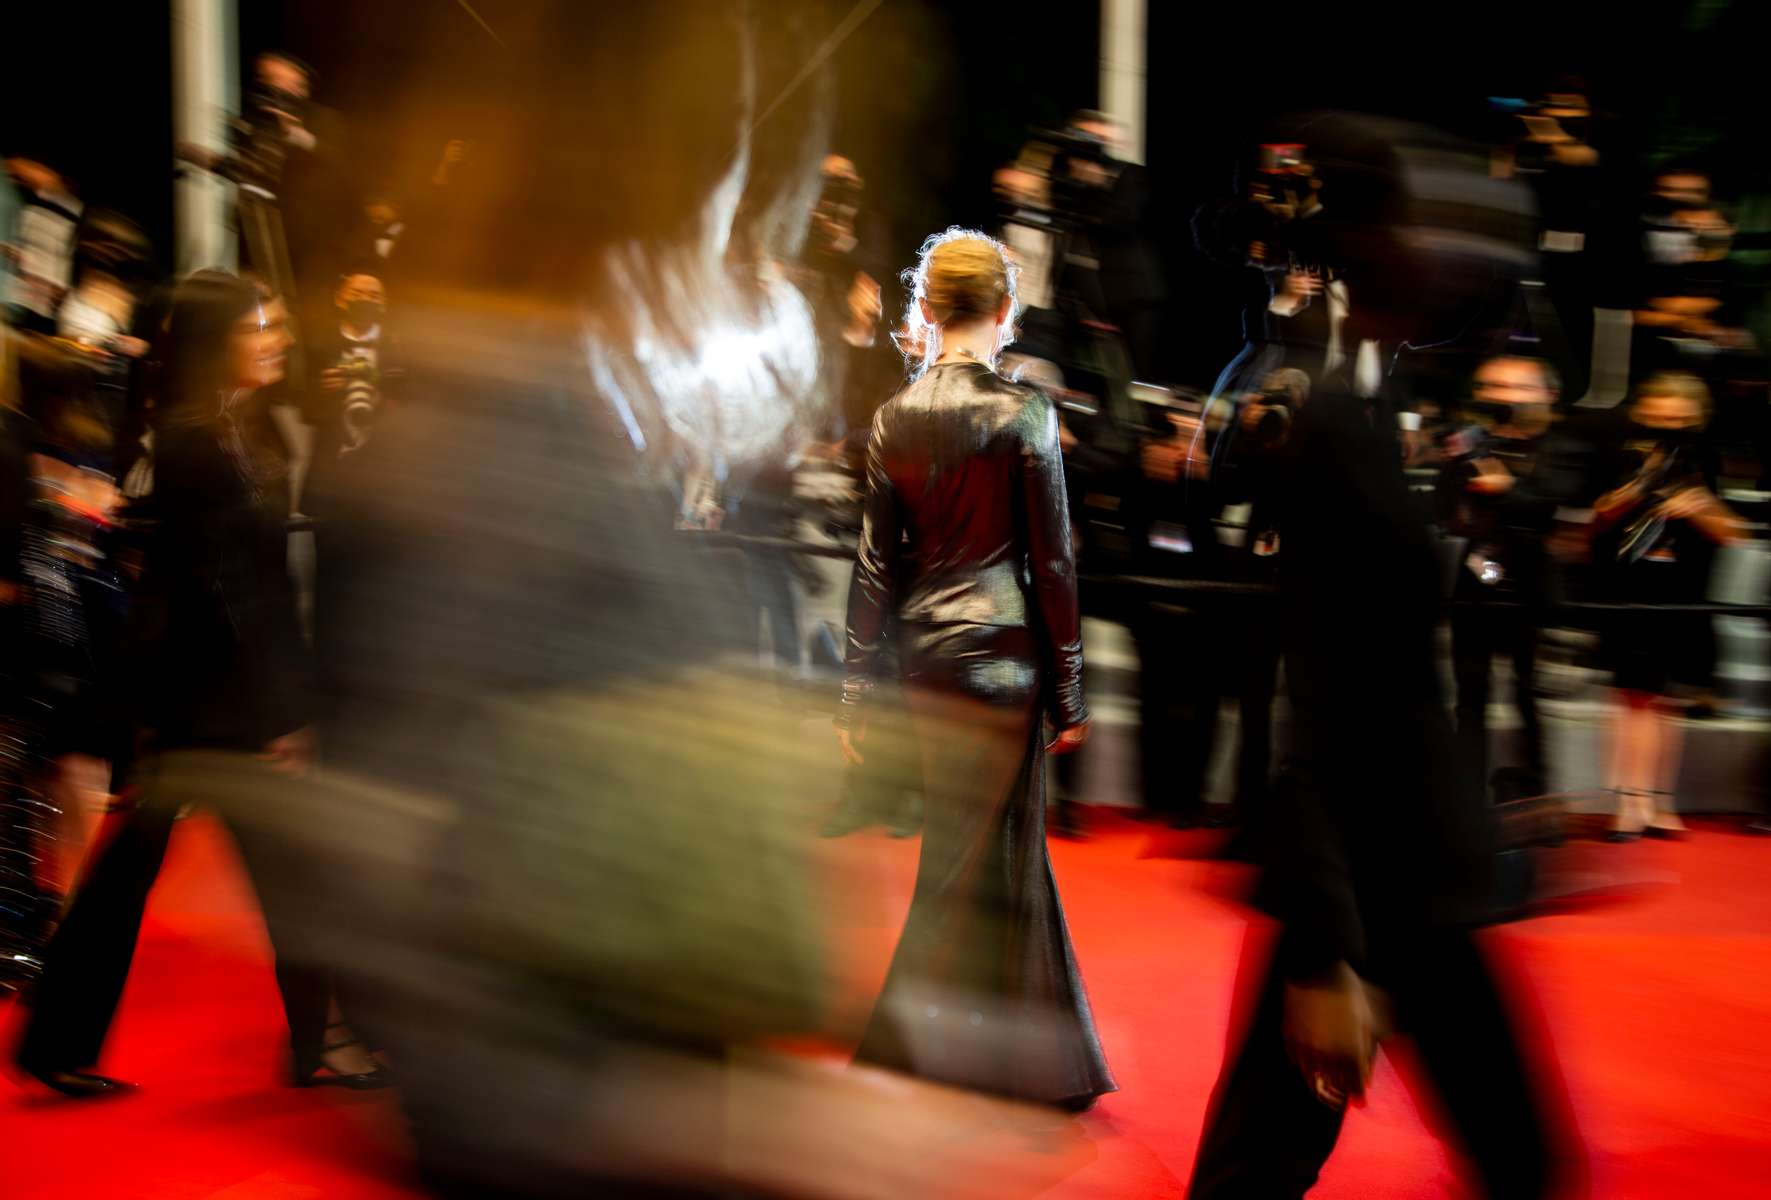 """Actress Deborah Francois arrives for the screening of the film  """"Les Olympiades"""" (Paris 13th District) in competition at the 74th annual Cannes Film Festival in Cannes, France on July 14, 2021."""